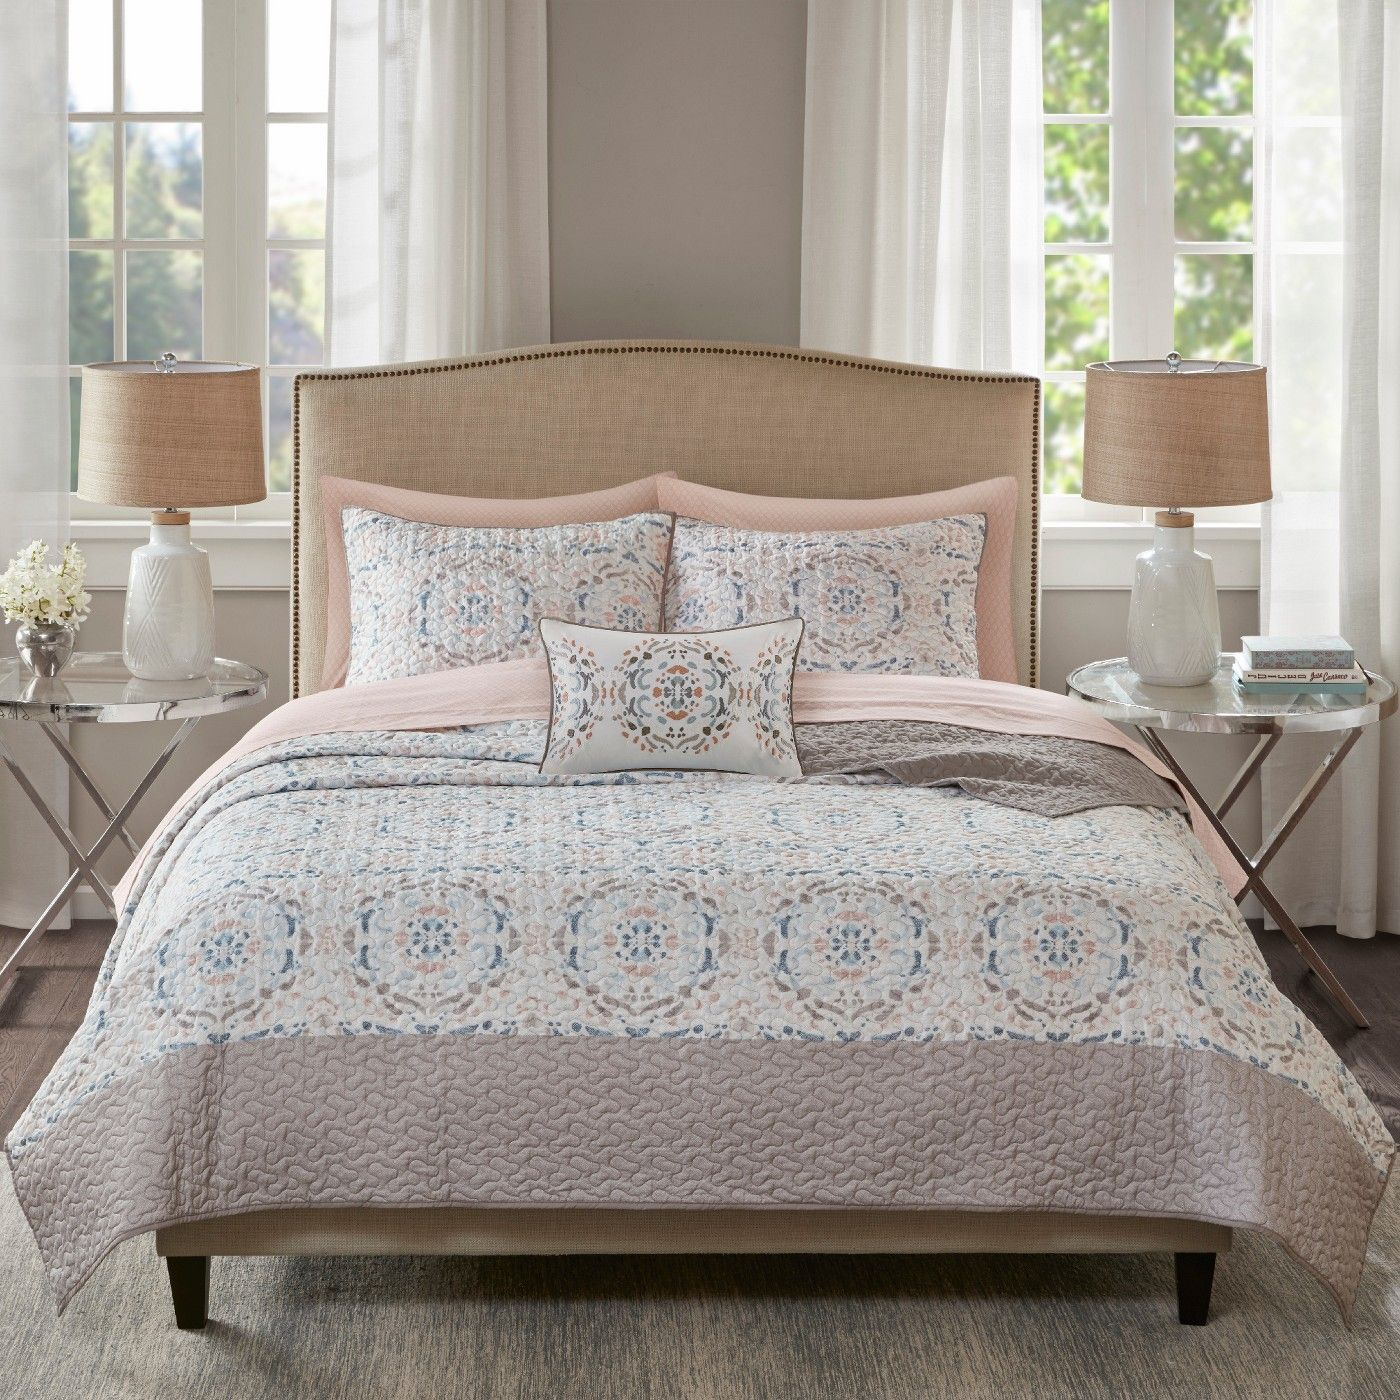 Blush Sandy Coverlet and Cotton Sheet Set image 1 of 6